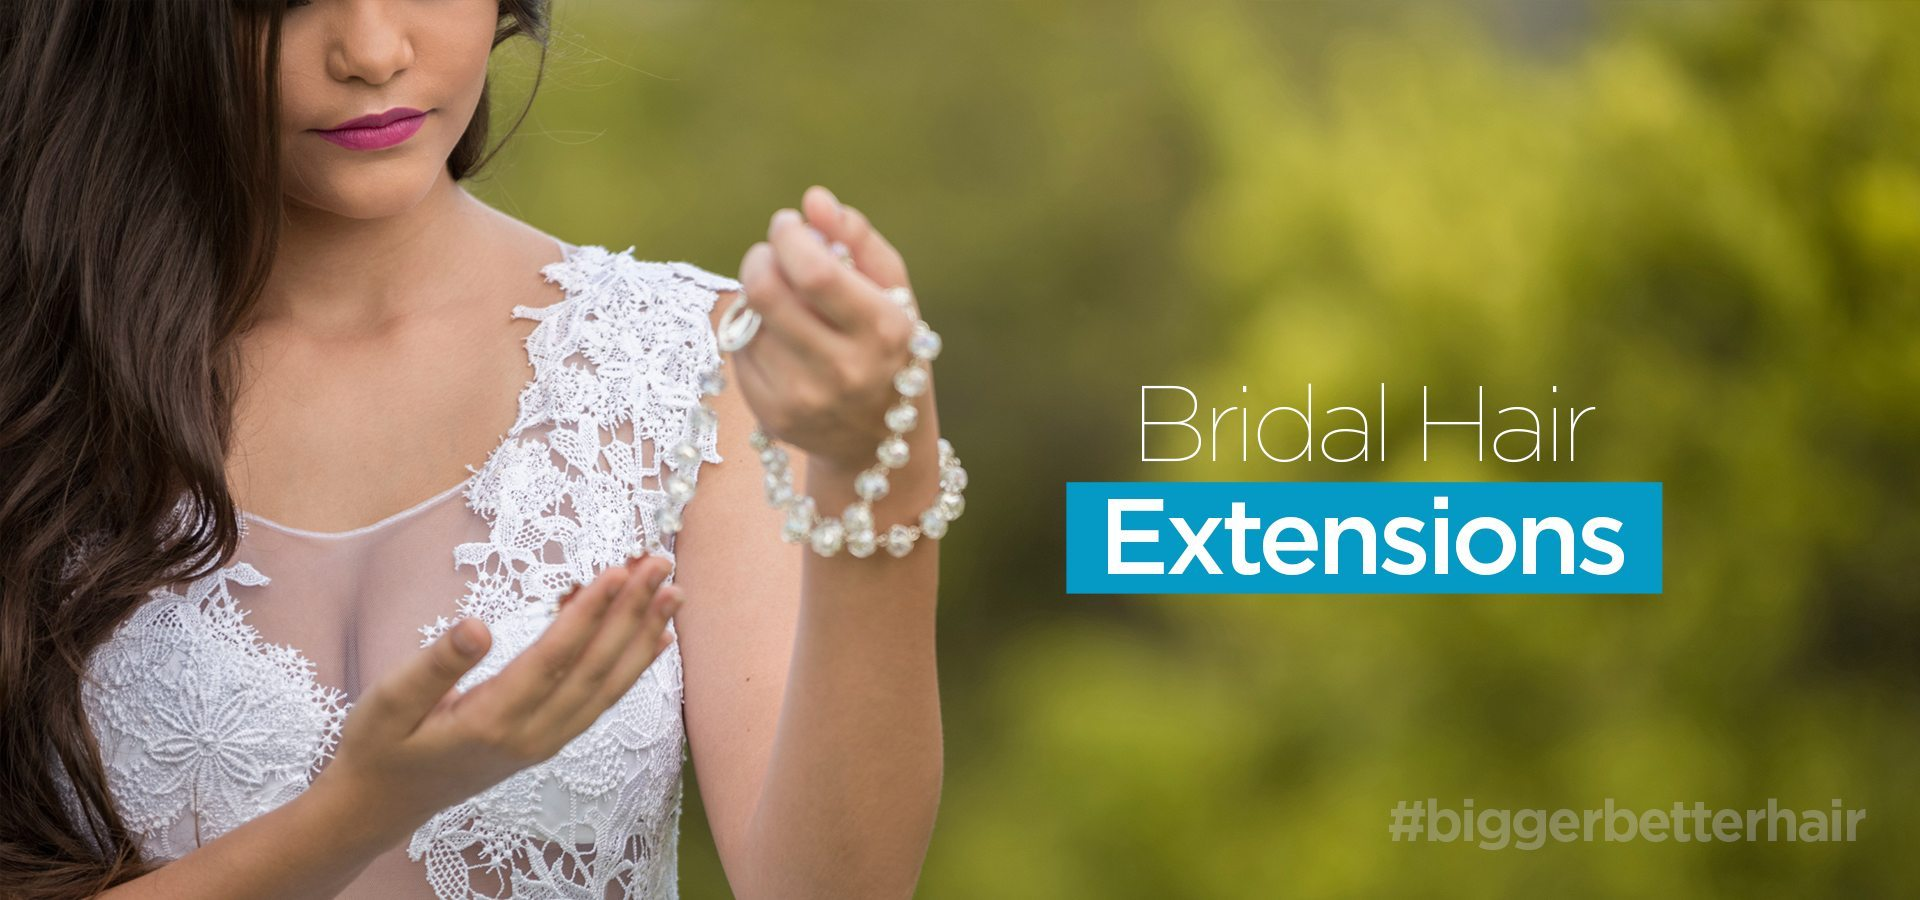 Bridal-Hair-Extensions-1-1